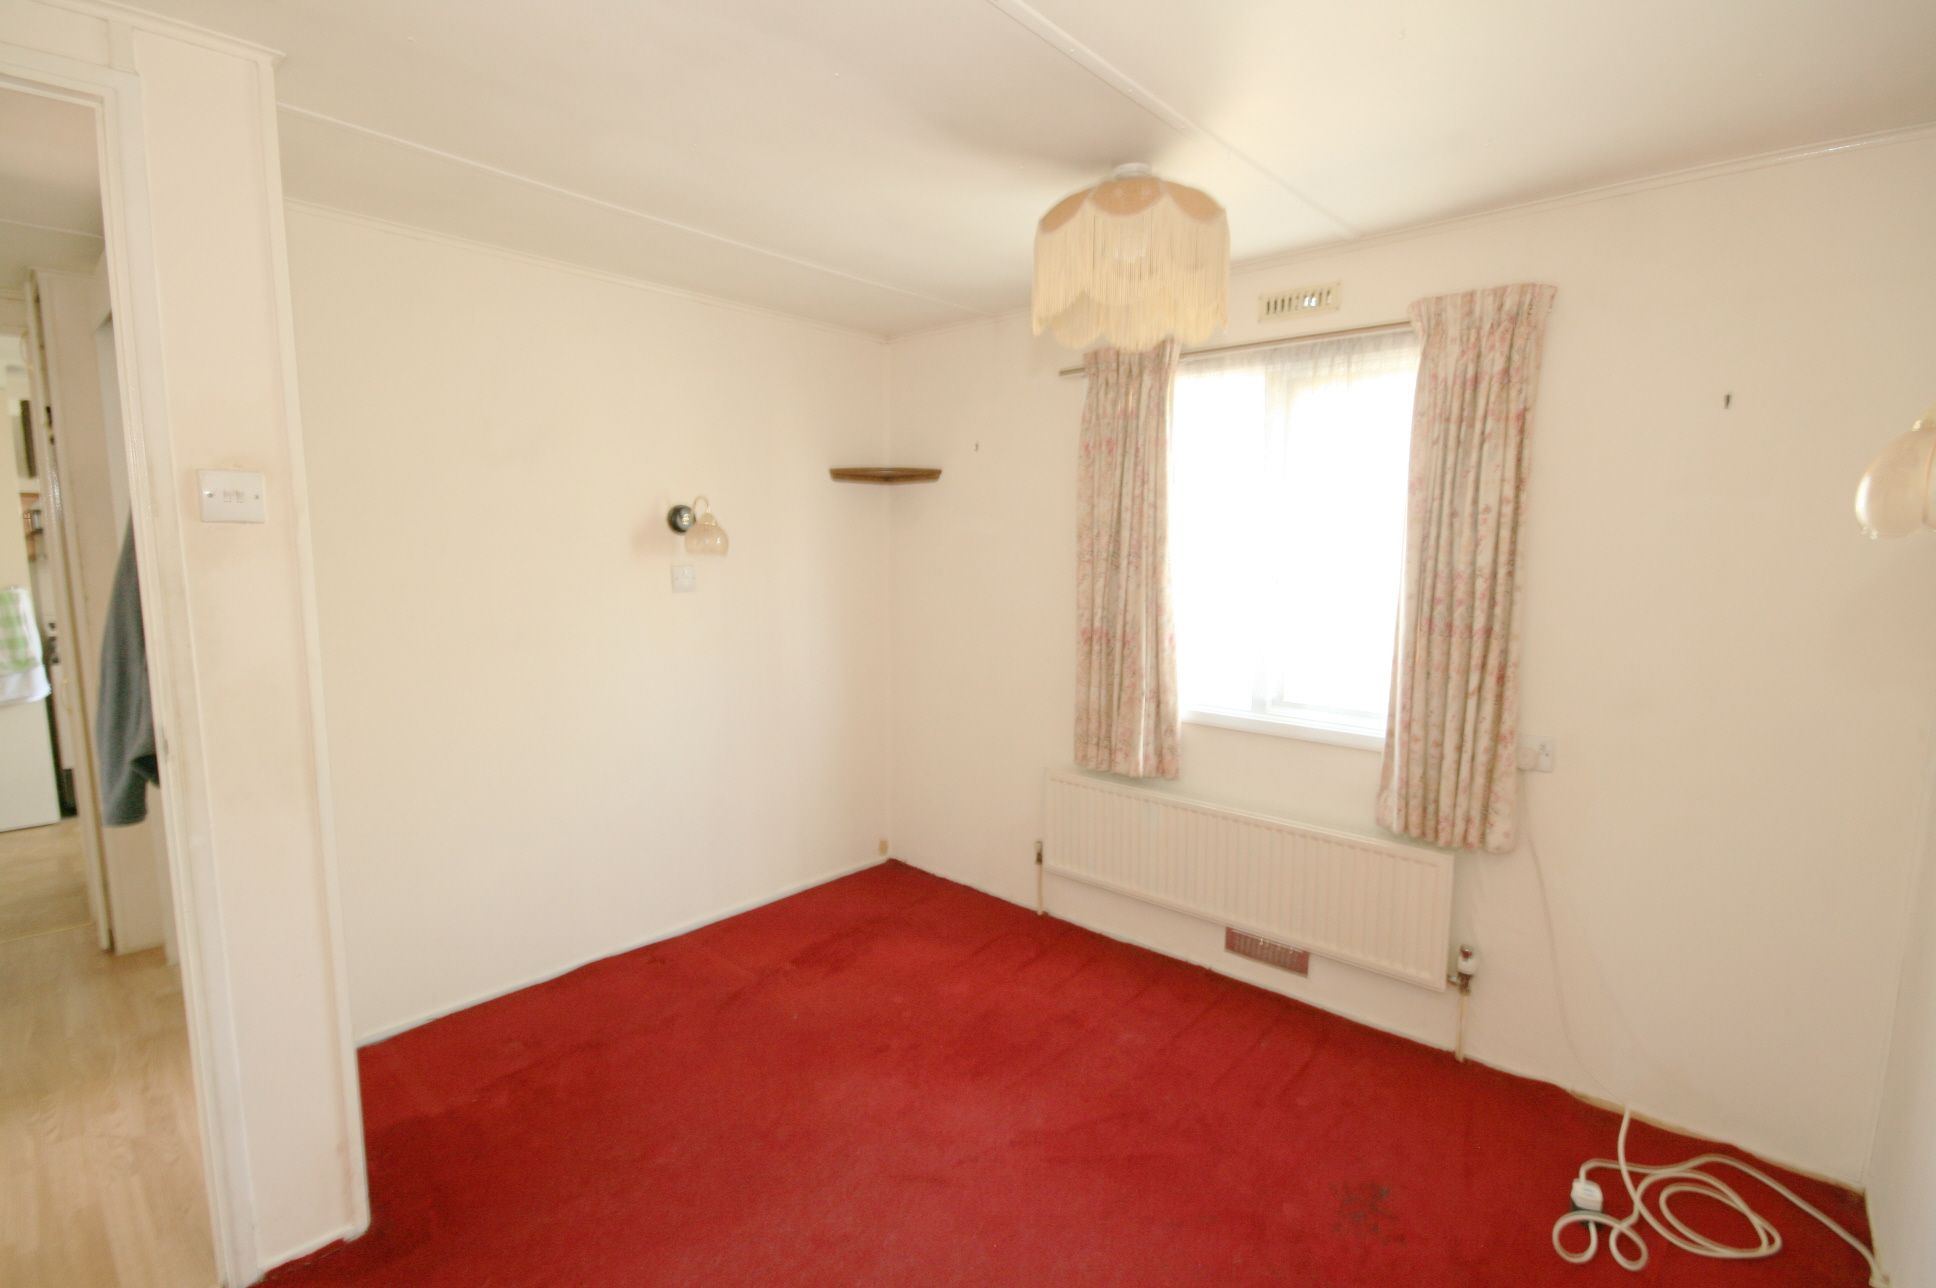 2 Bedroom Park Home House For Sale - Photograph 5